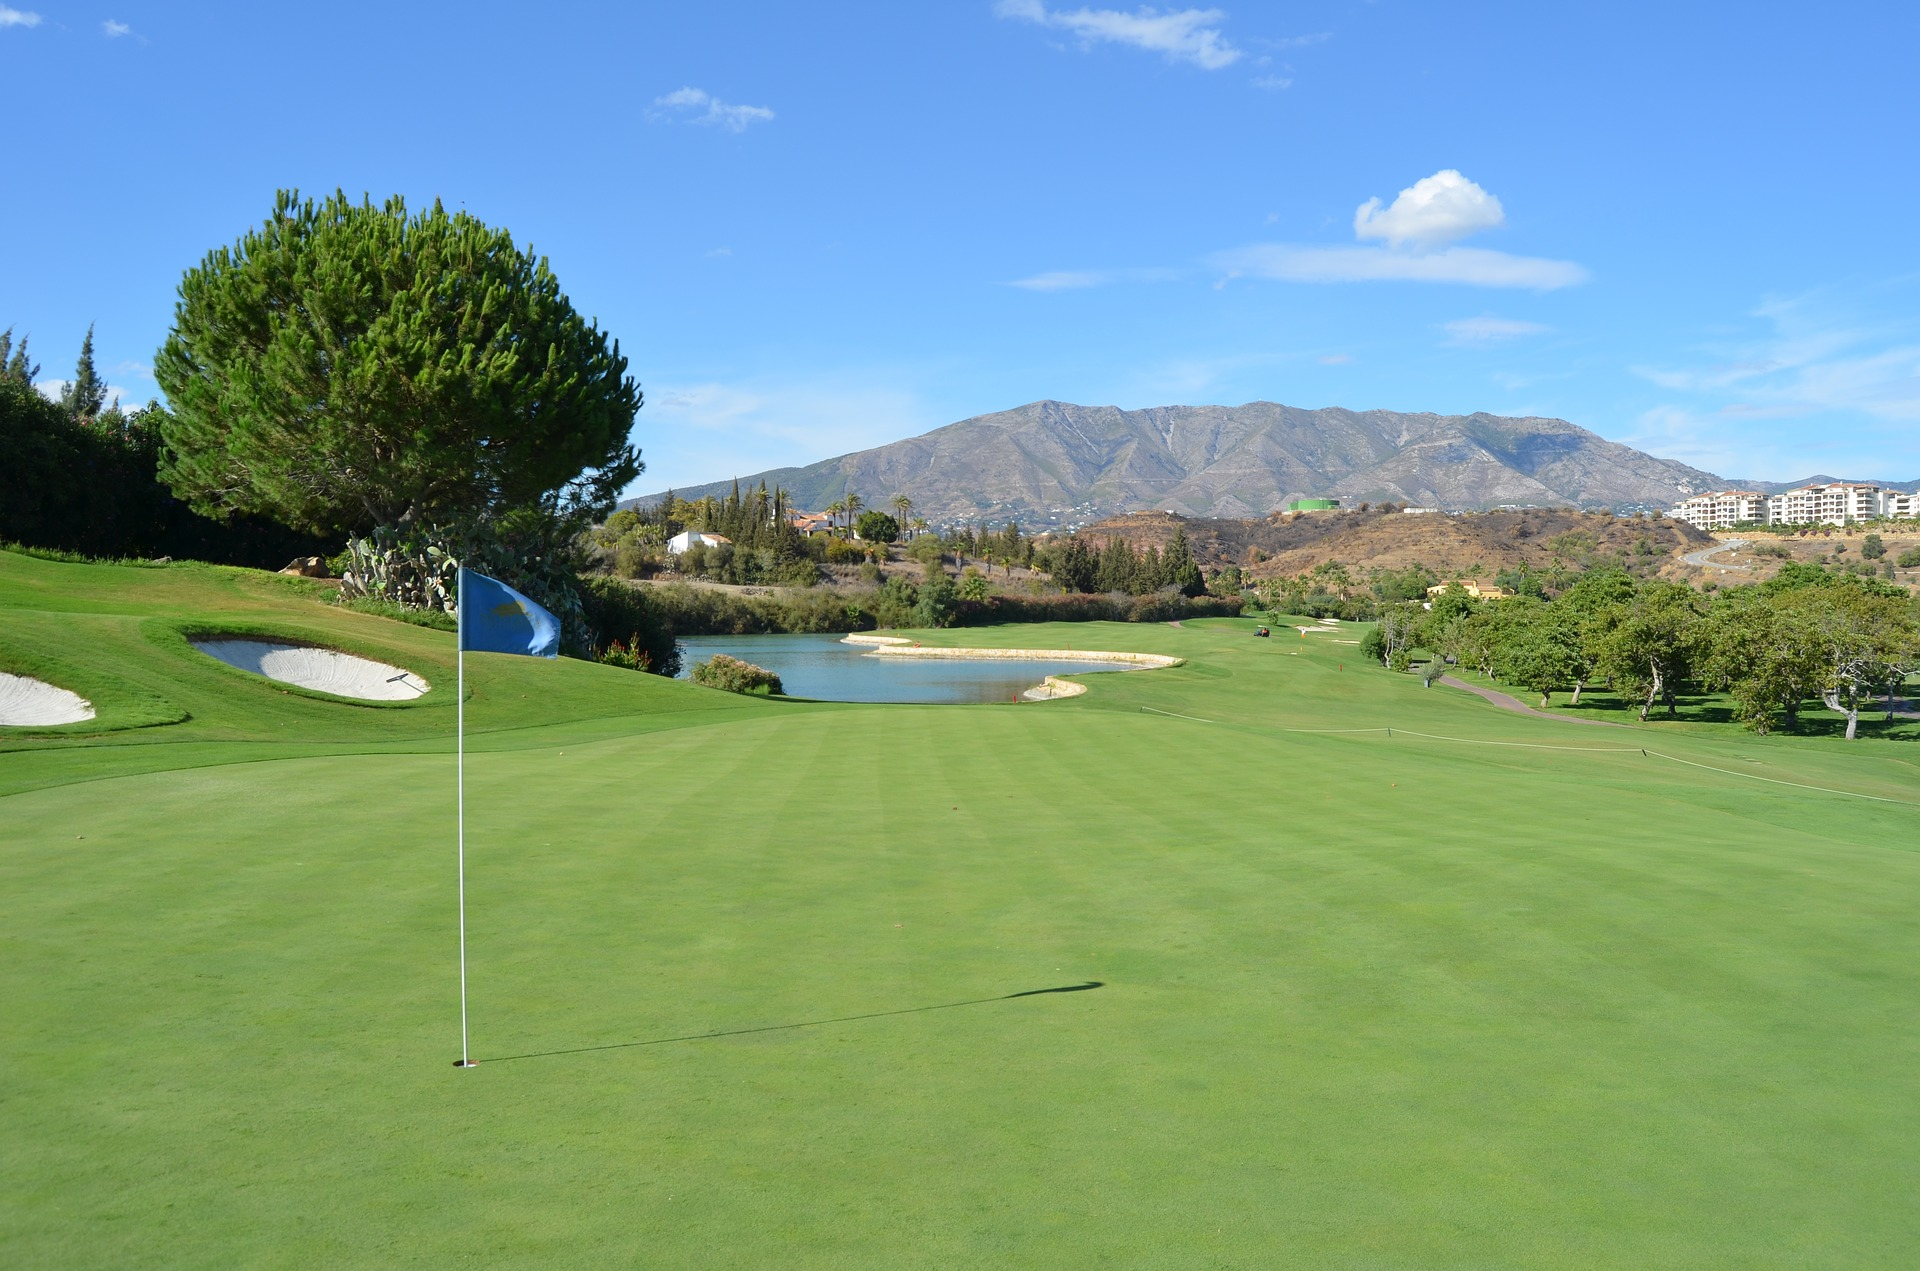 Best Golf Course In Myrtle Beach For Beginners